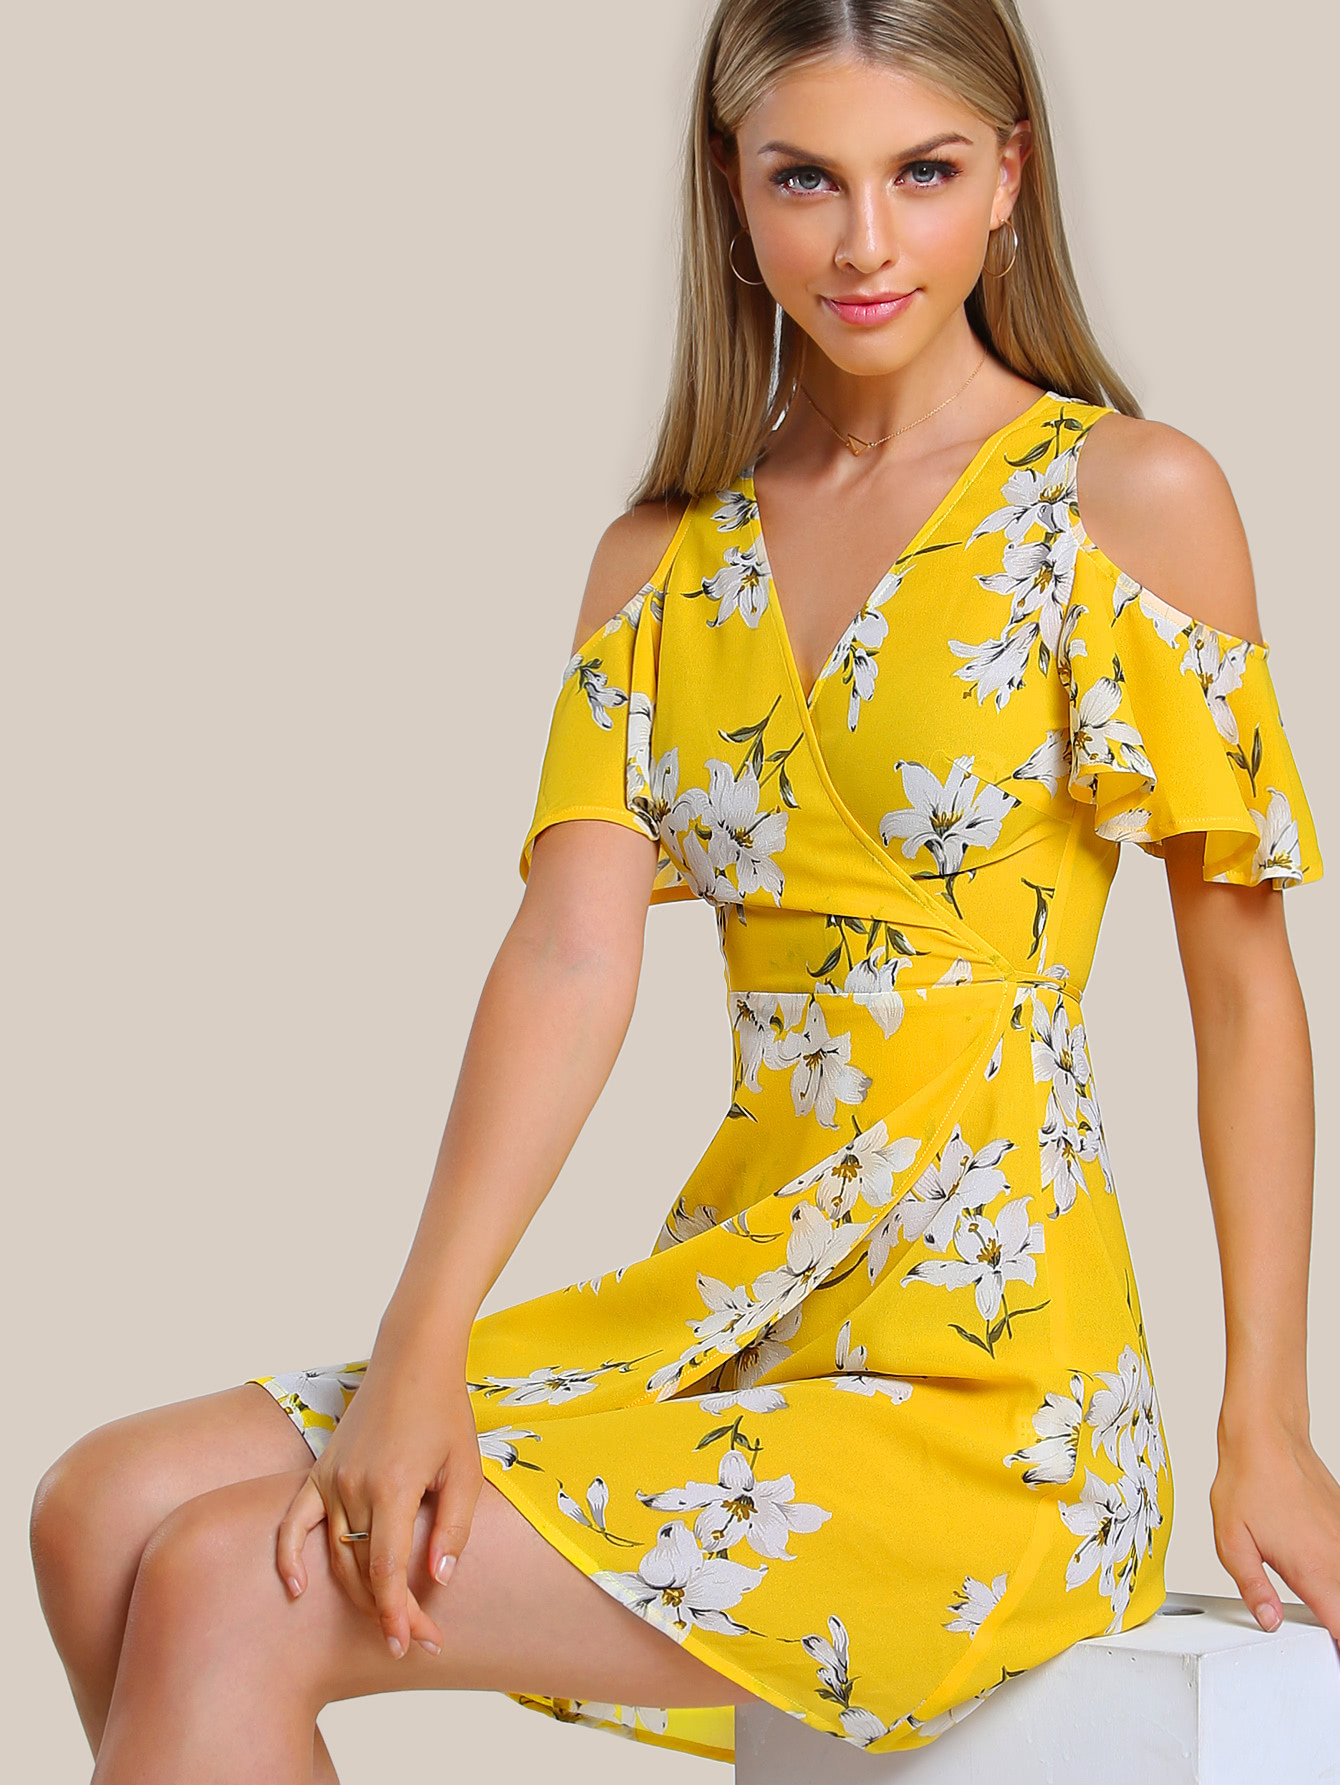 shein-dress-allbuenothings-summer-must-have